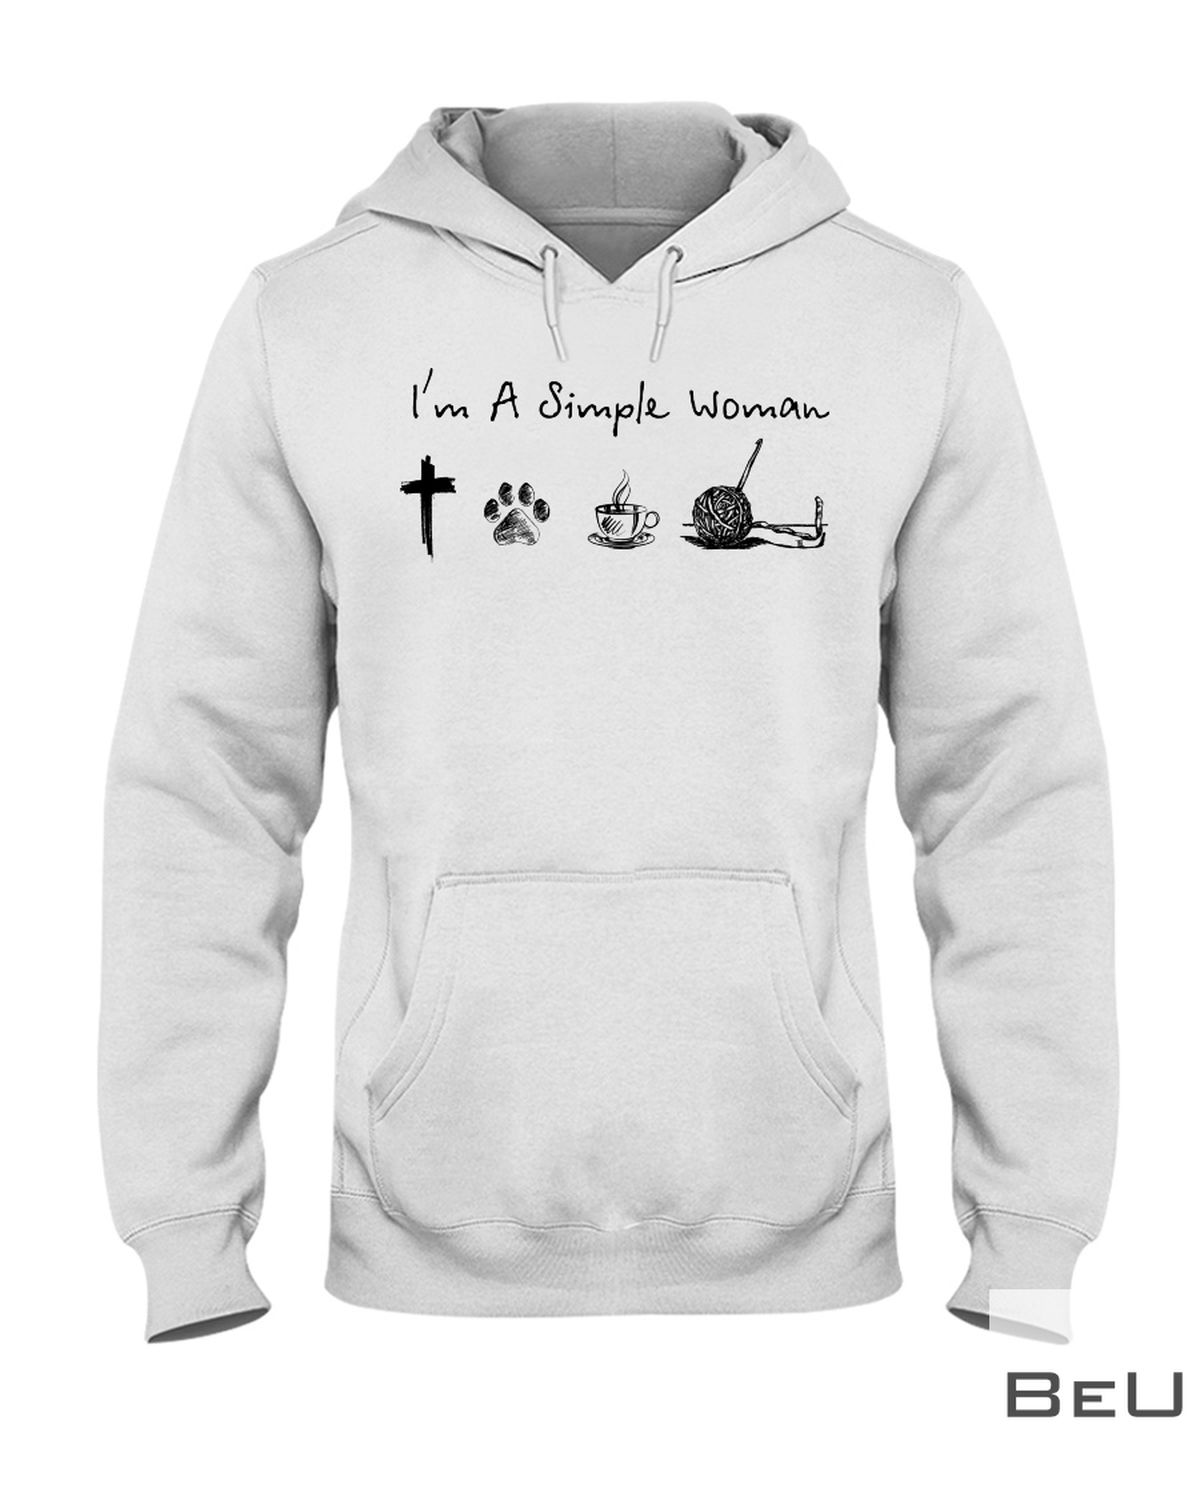 I'm A Simple Woman Who Loves Jesus Dog Coffee And Crocheting Shirtz